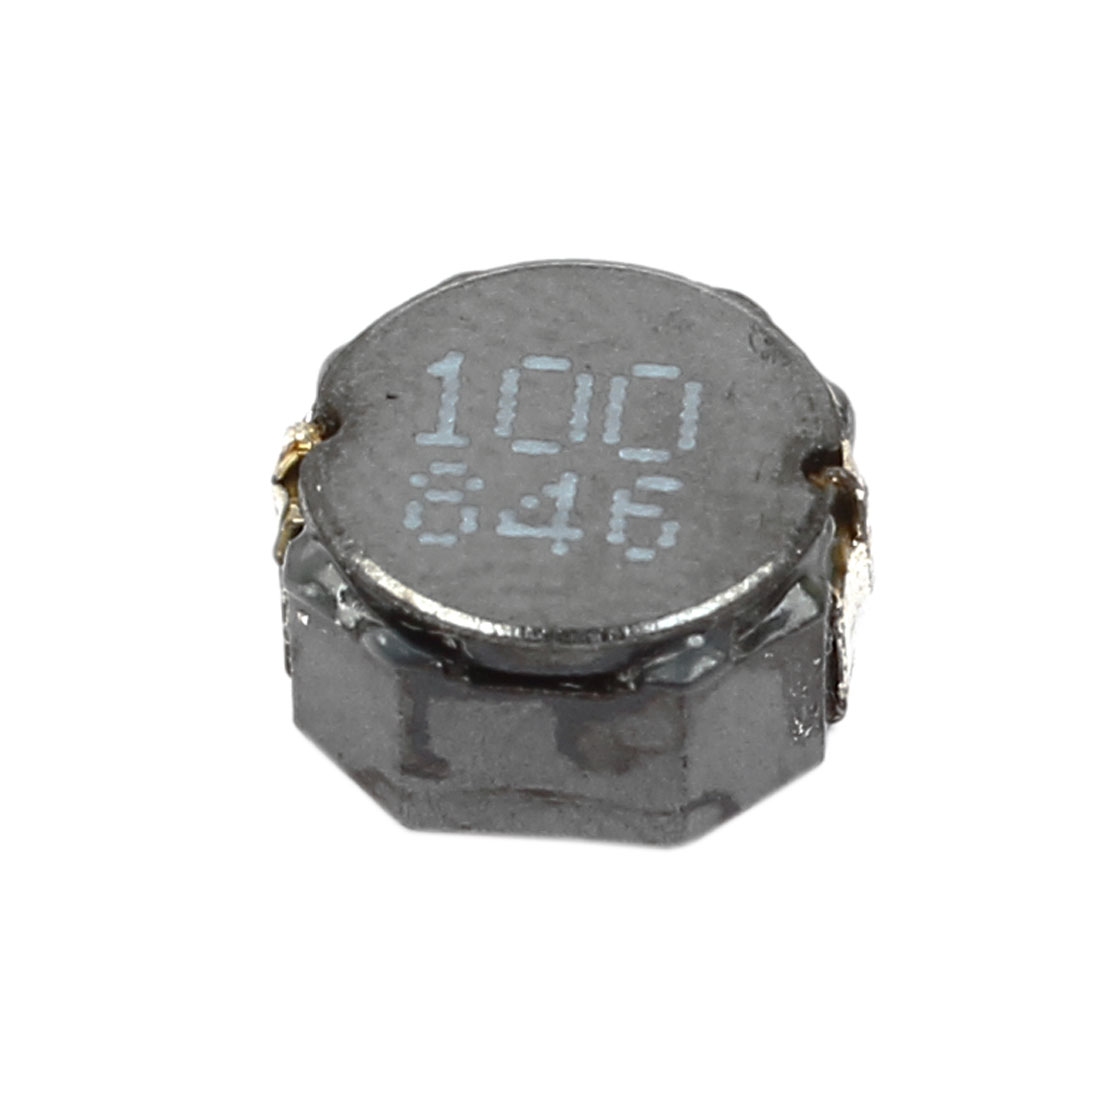 10uH Inductance 9mmx4.5mm Round Shaped Surface Mounting SMD Power Inductor